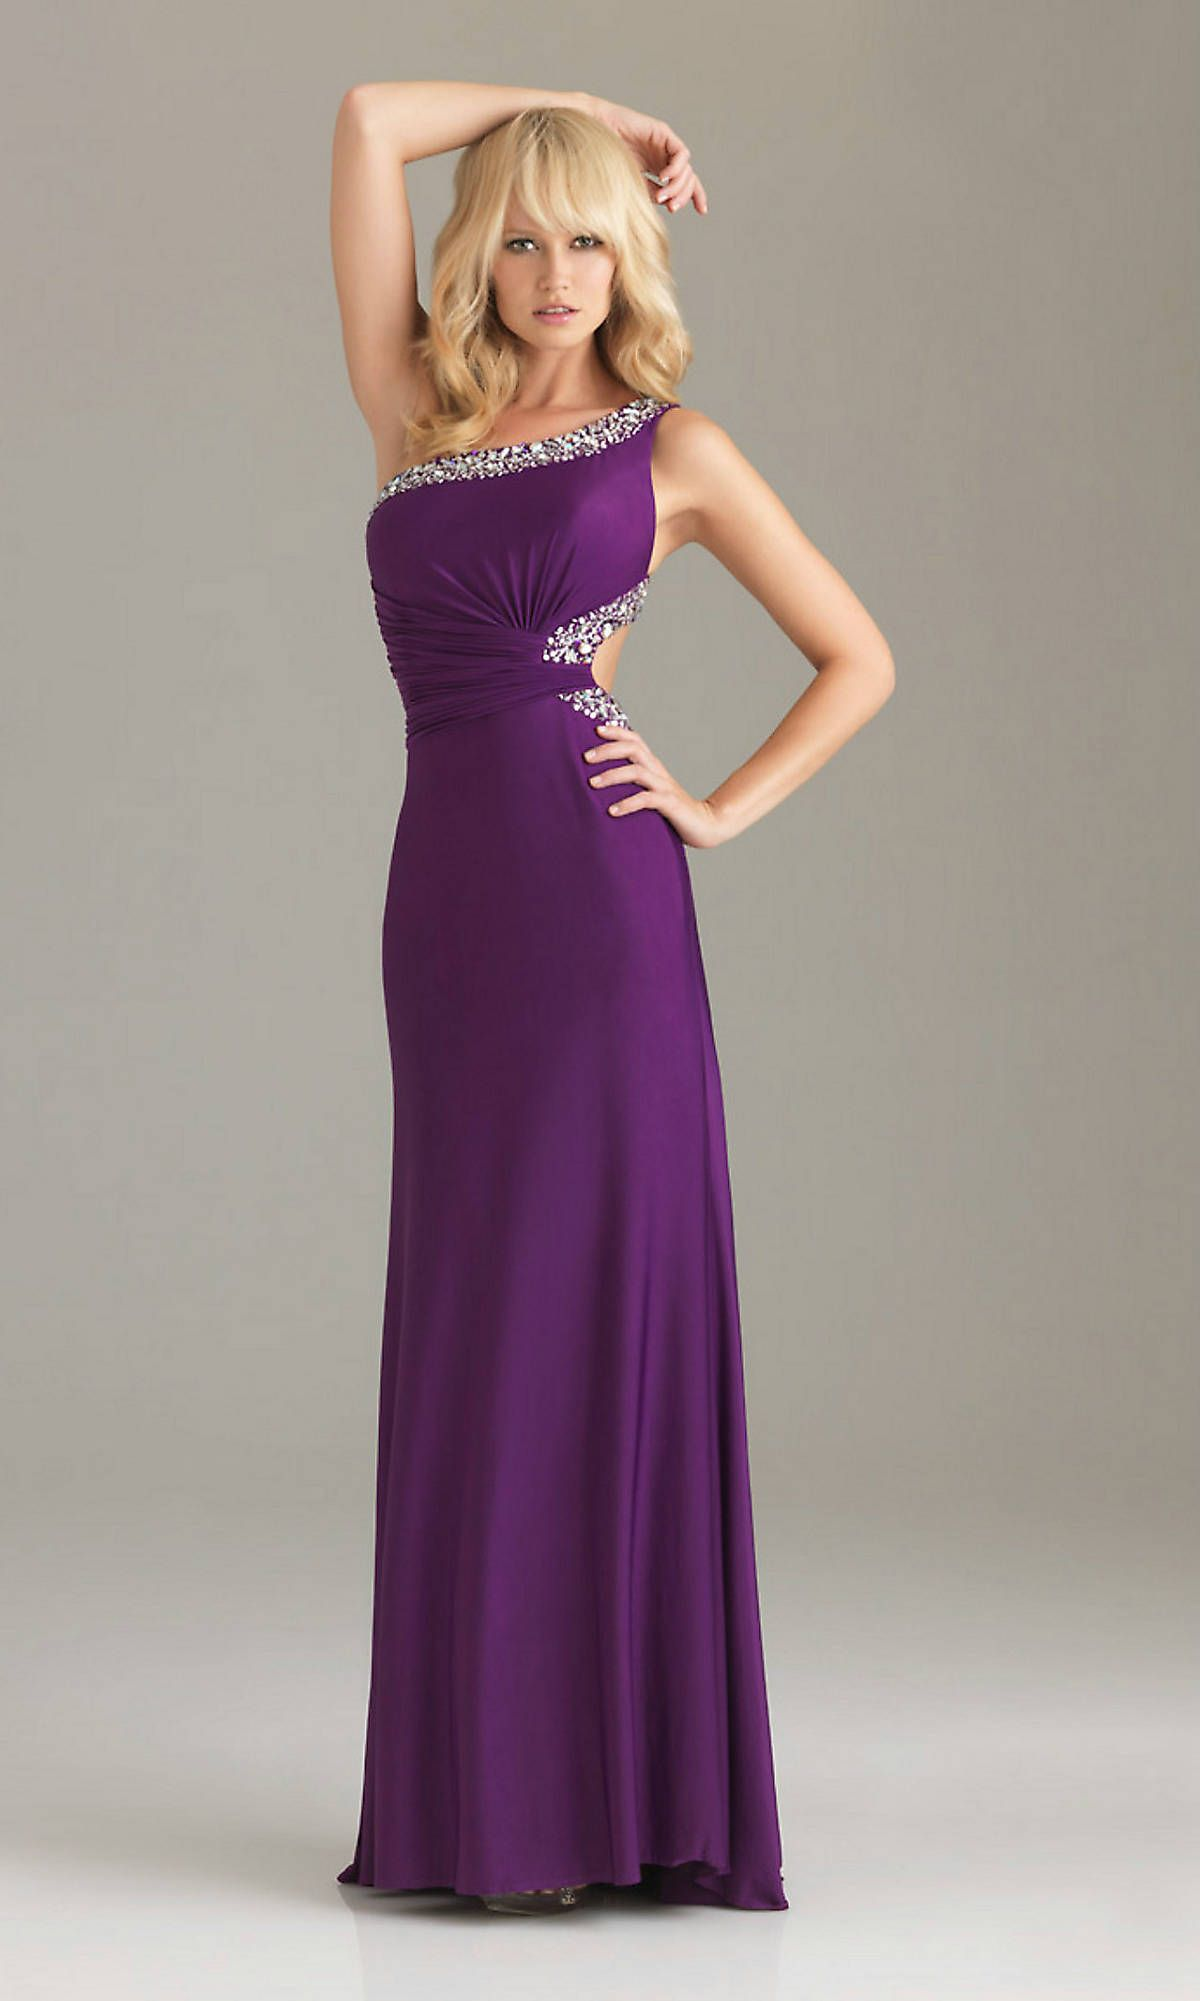 1000  images about One Shoulder Prom Dresses on Pinterest - Prom ...